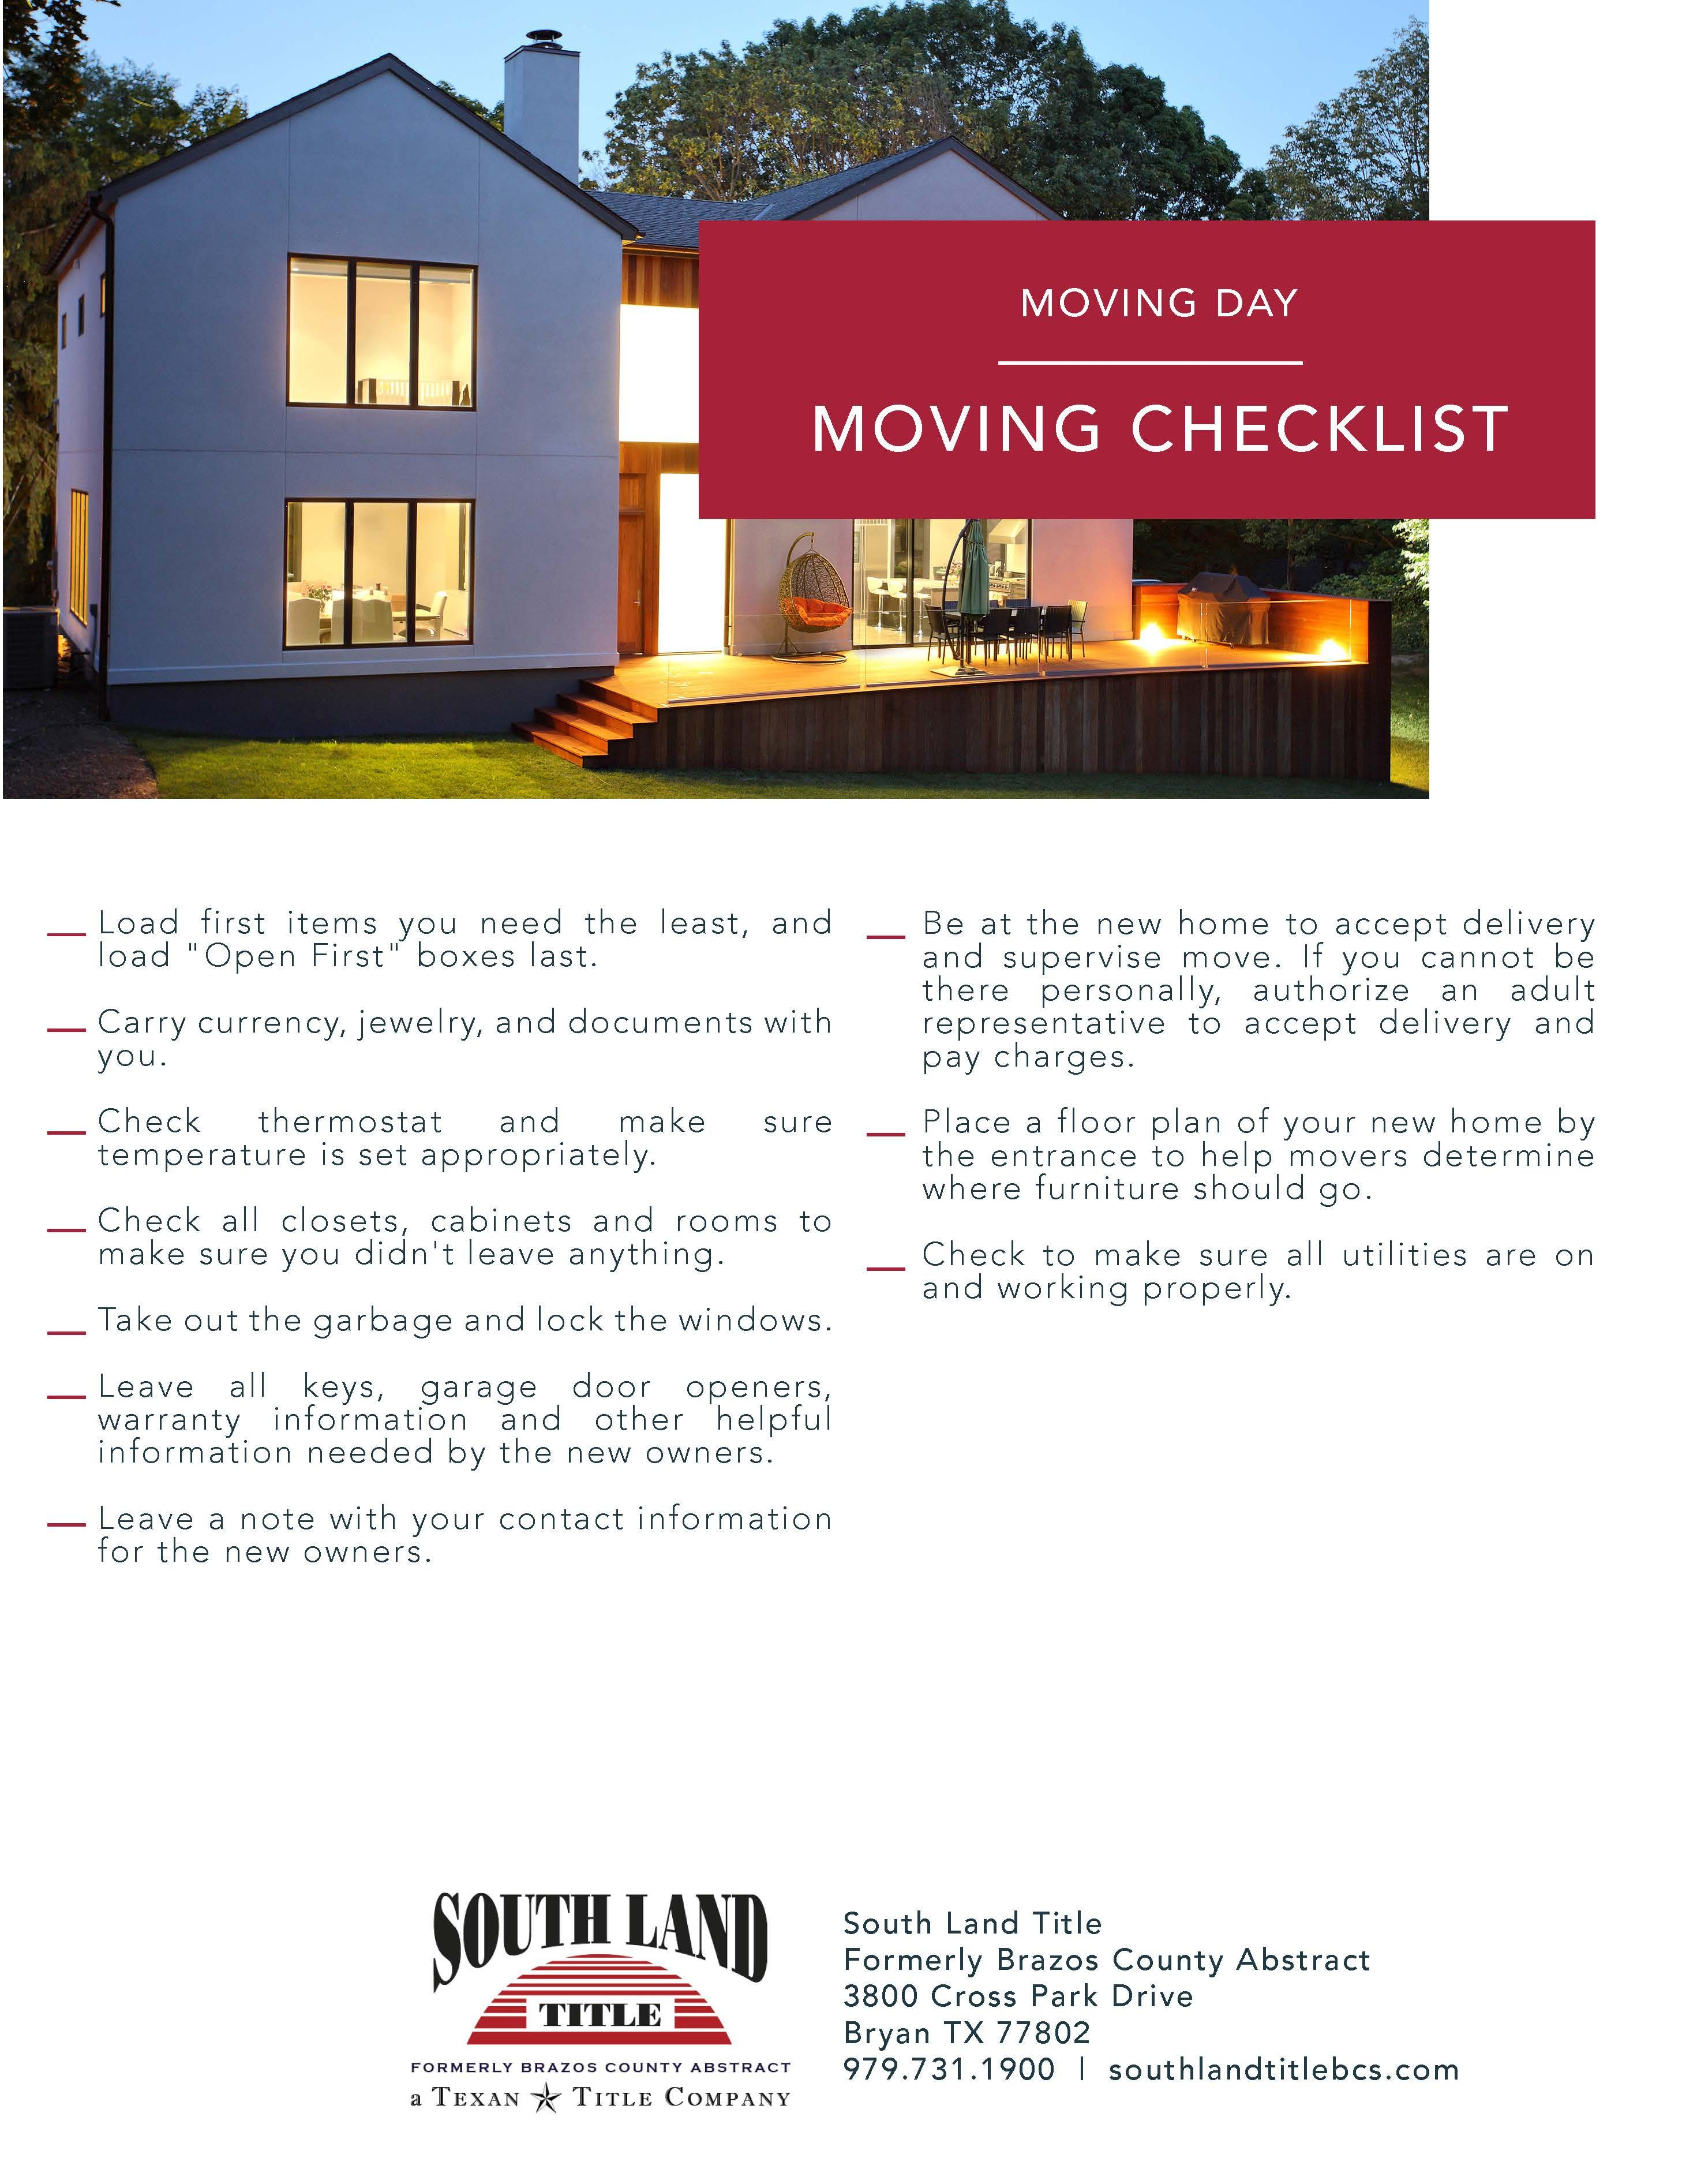 Moving Checklist For More Information Please Visit Our Website